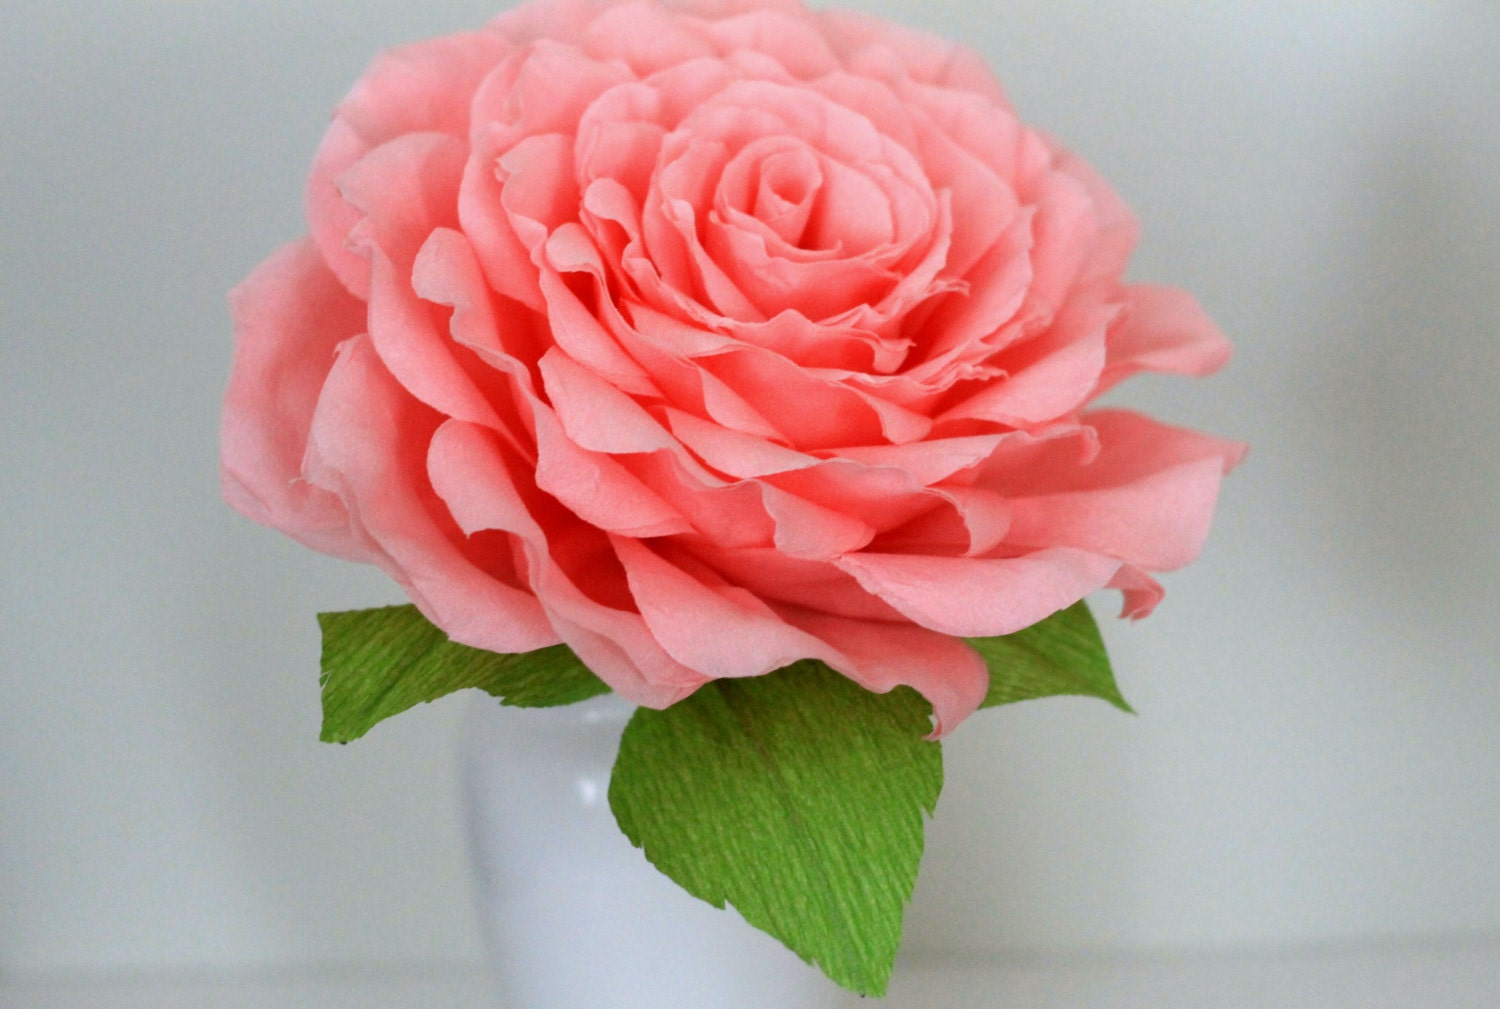 Large paper rose large paper flower for weddingglamelia zoom dhlflorist Choice Image